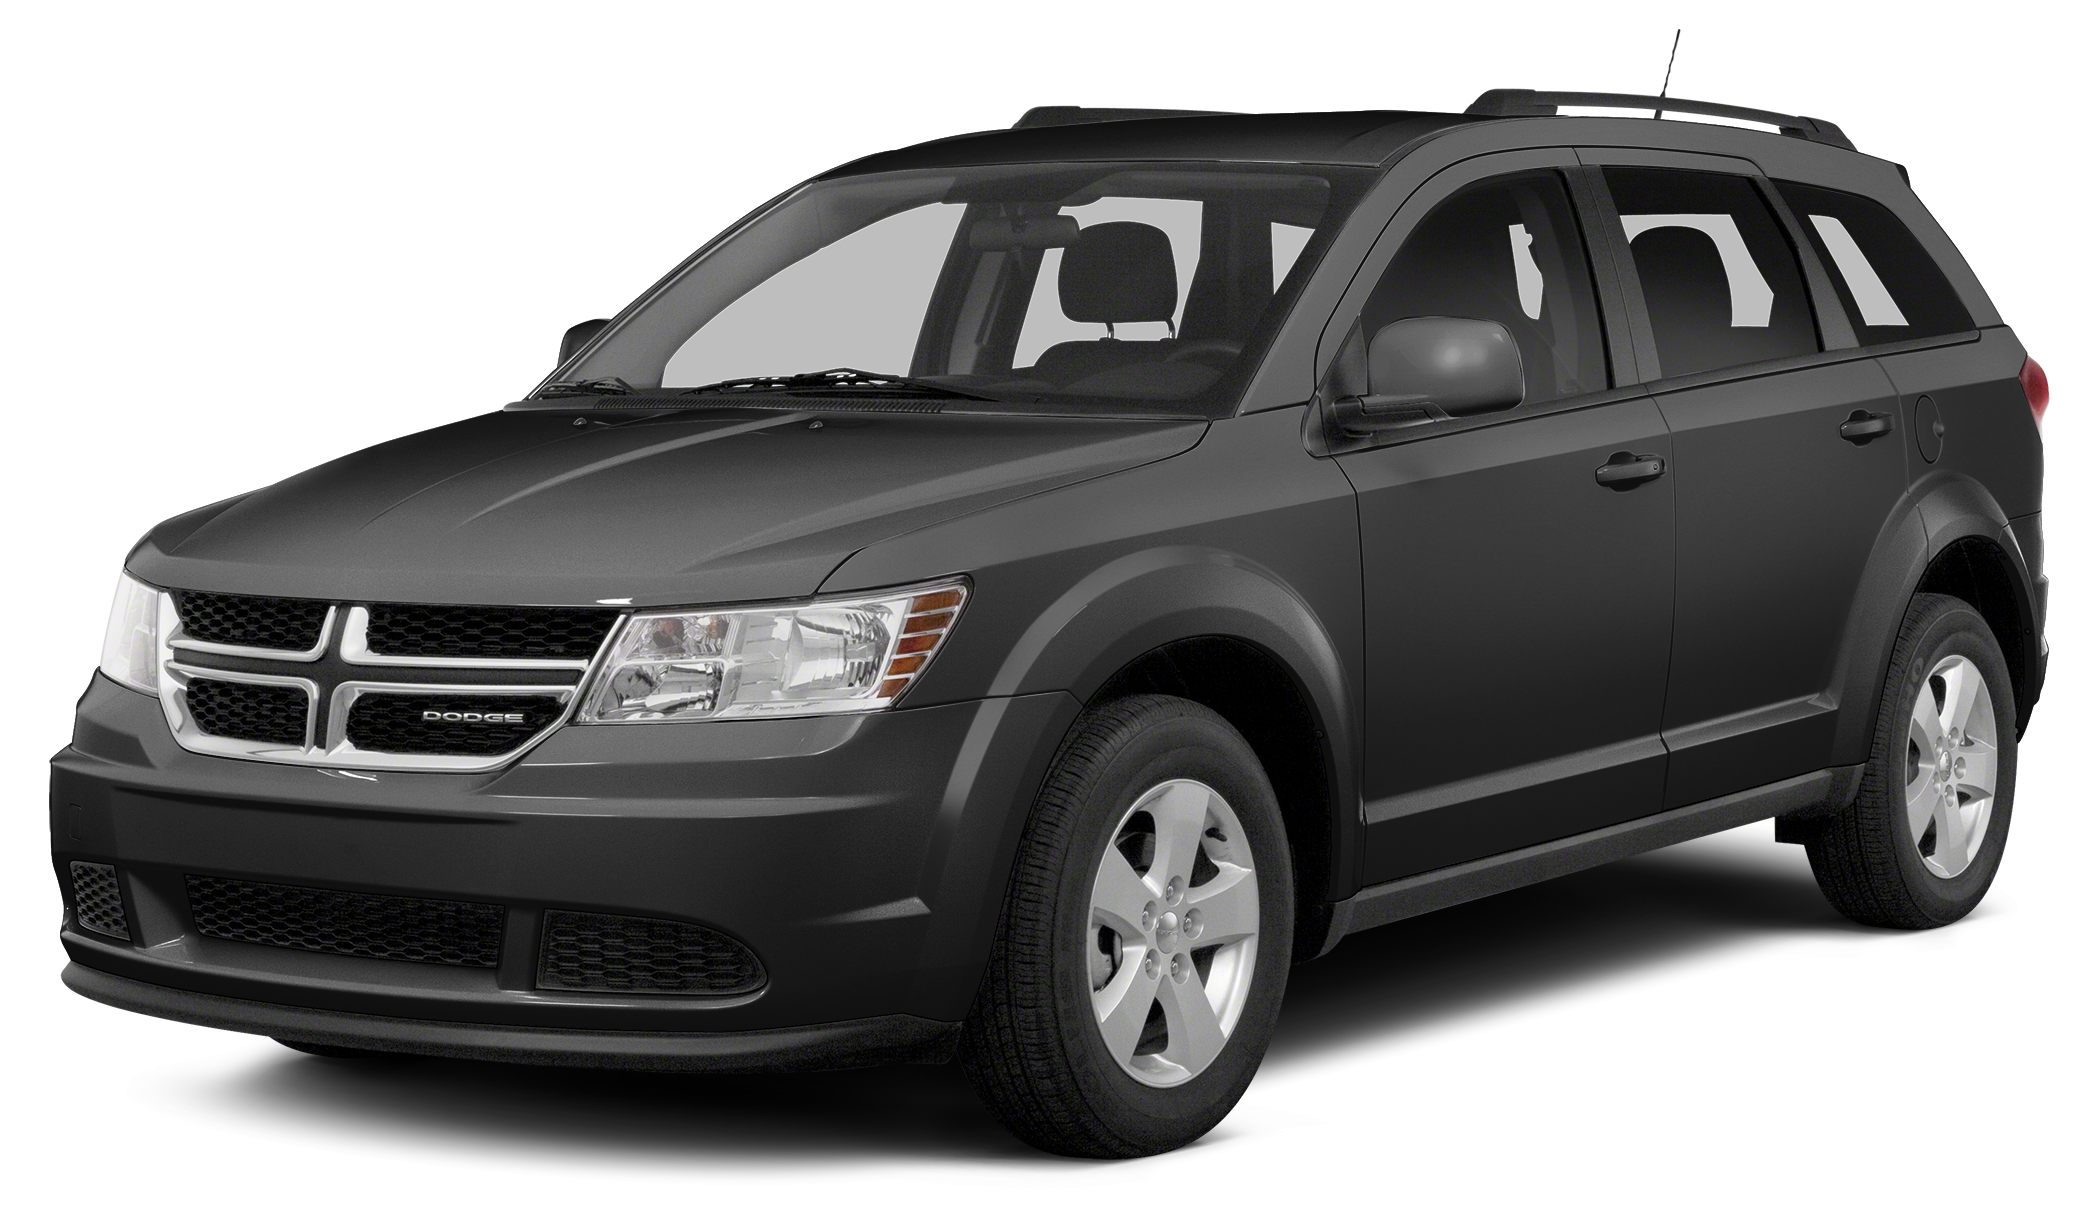 2013 Dodge Journey SE At Advantage Chrysler you know you are getting a safe and dependable vehicle